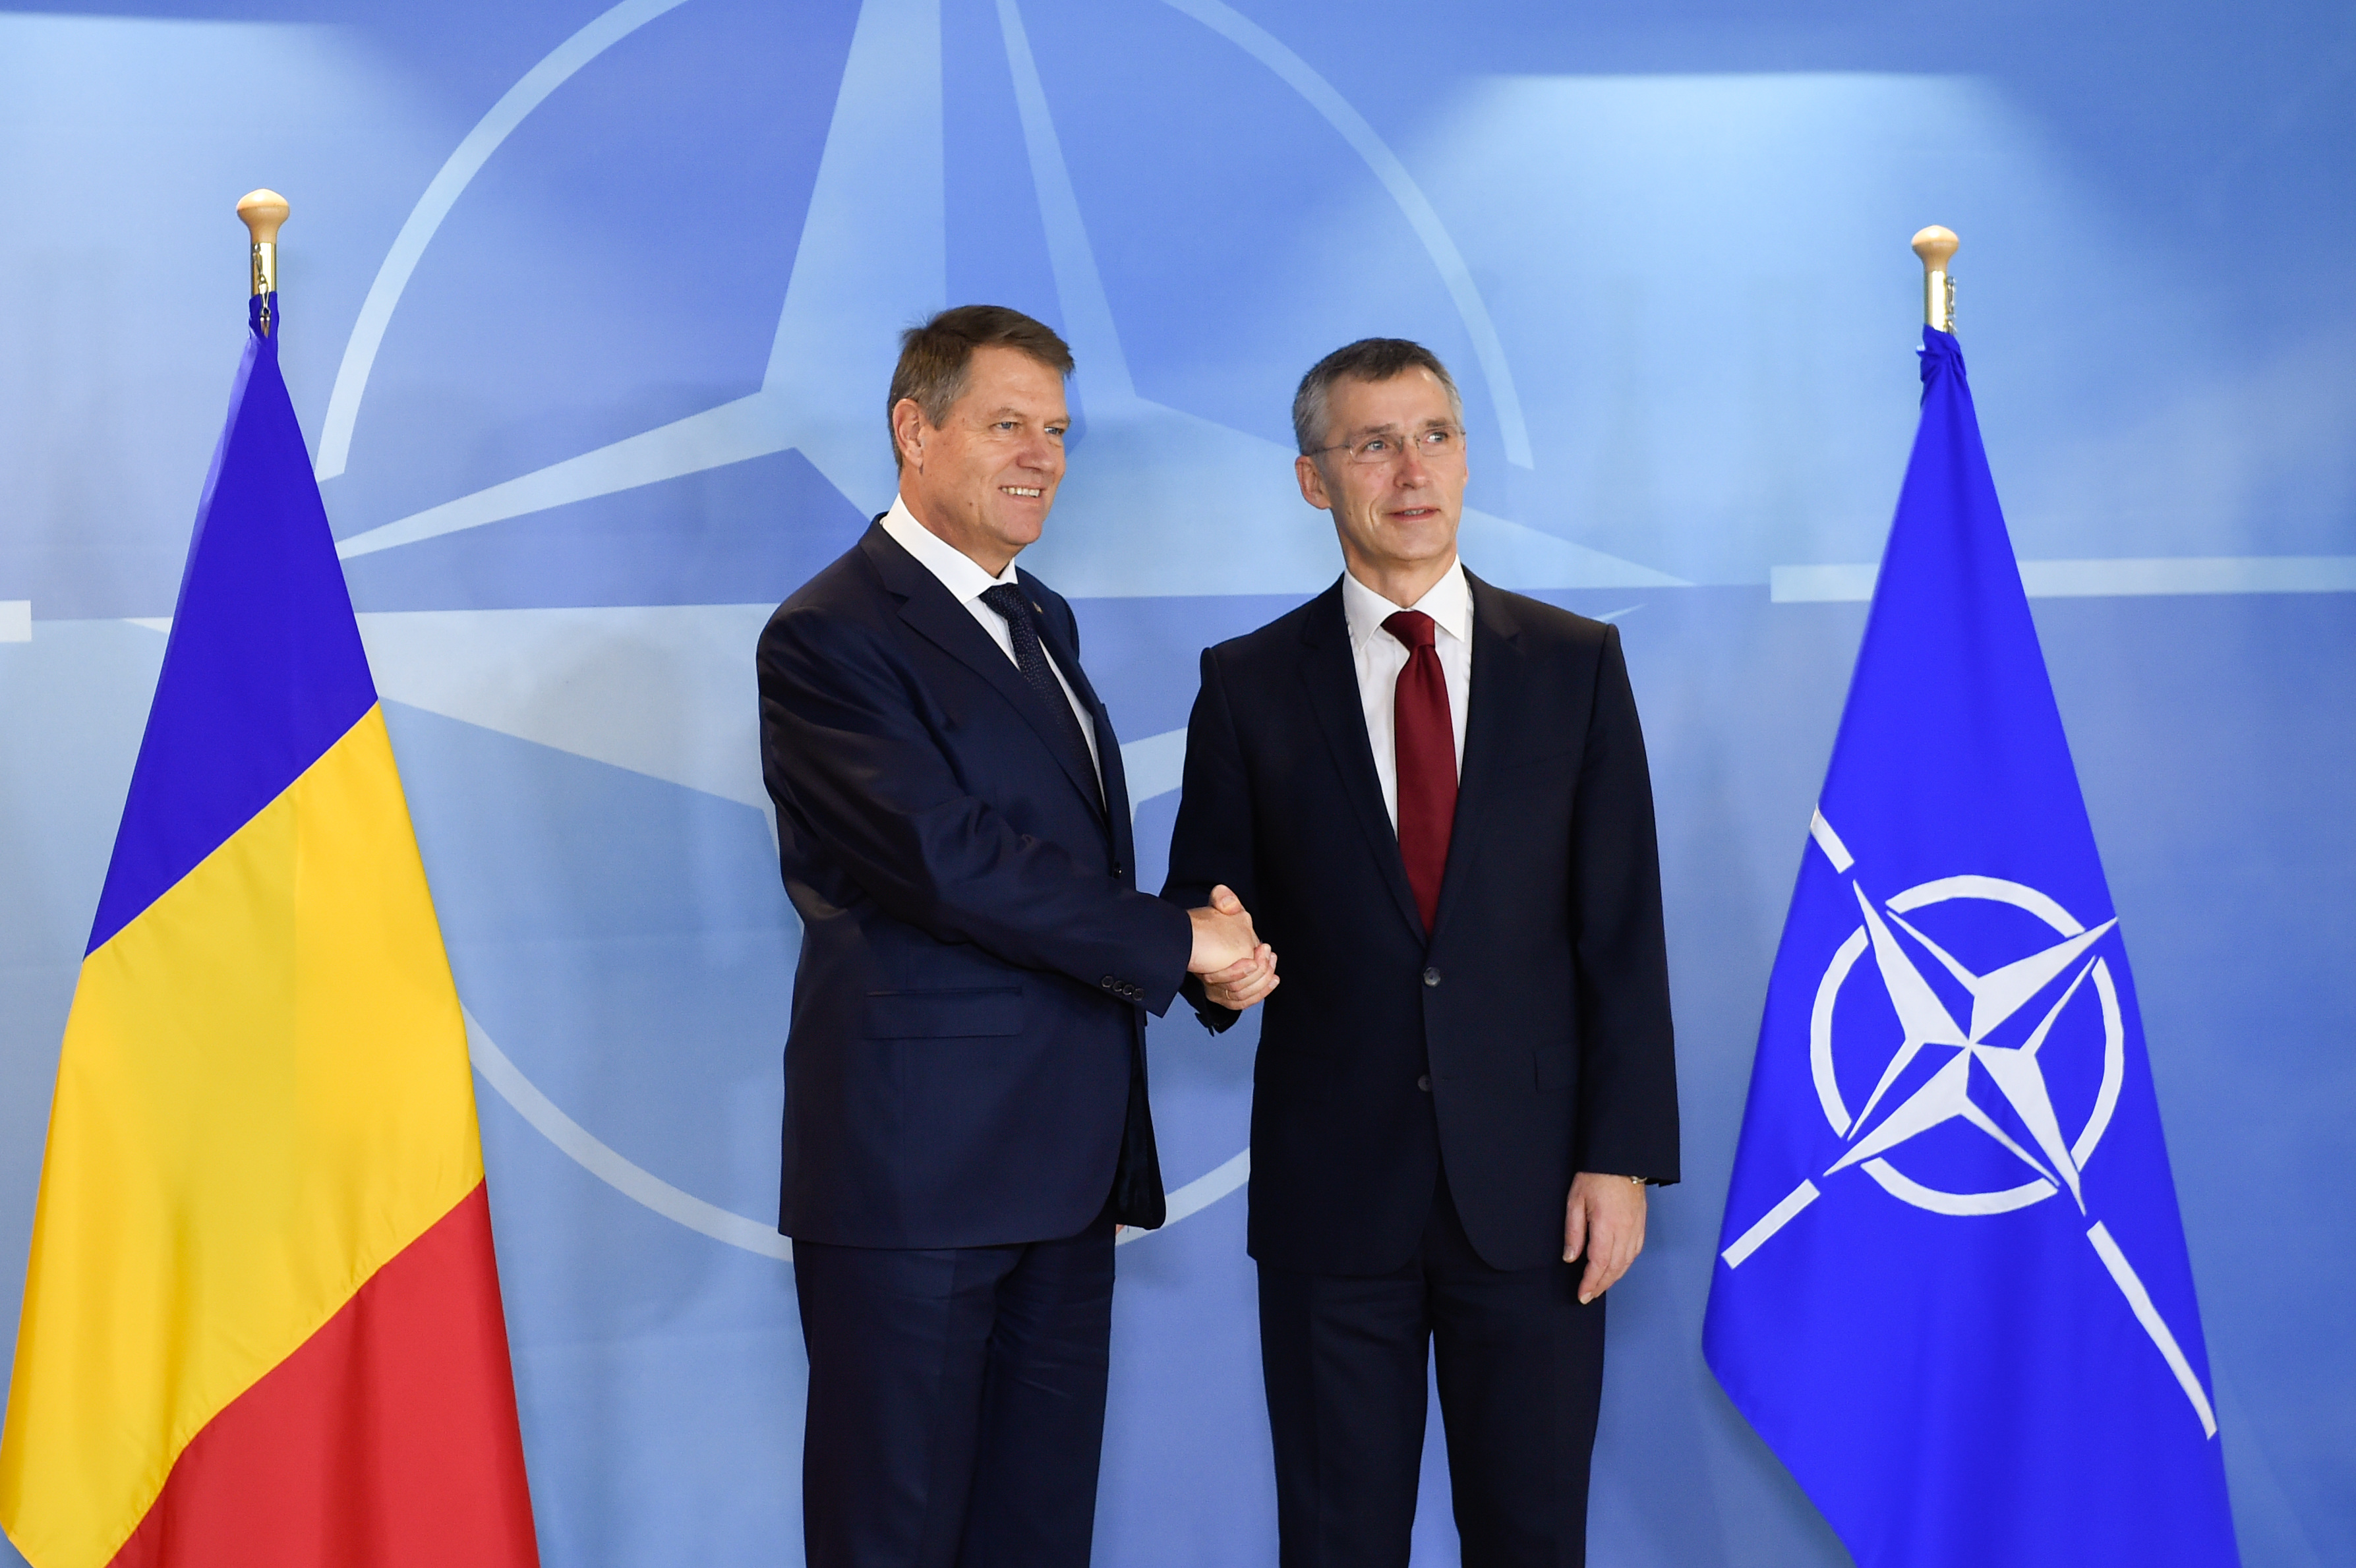 Romanian President talks defense funds, stage of anti-missile base during visit in Brussels